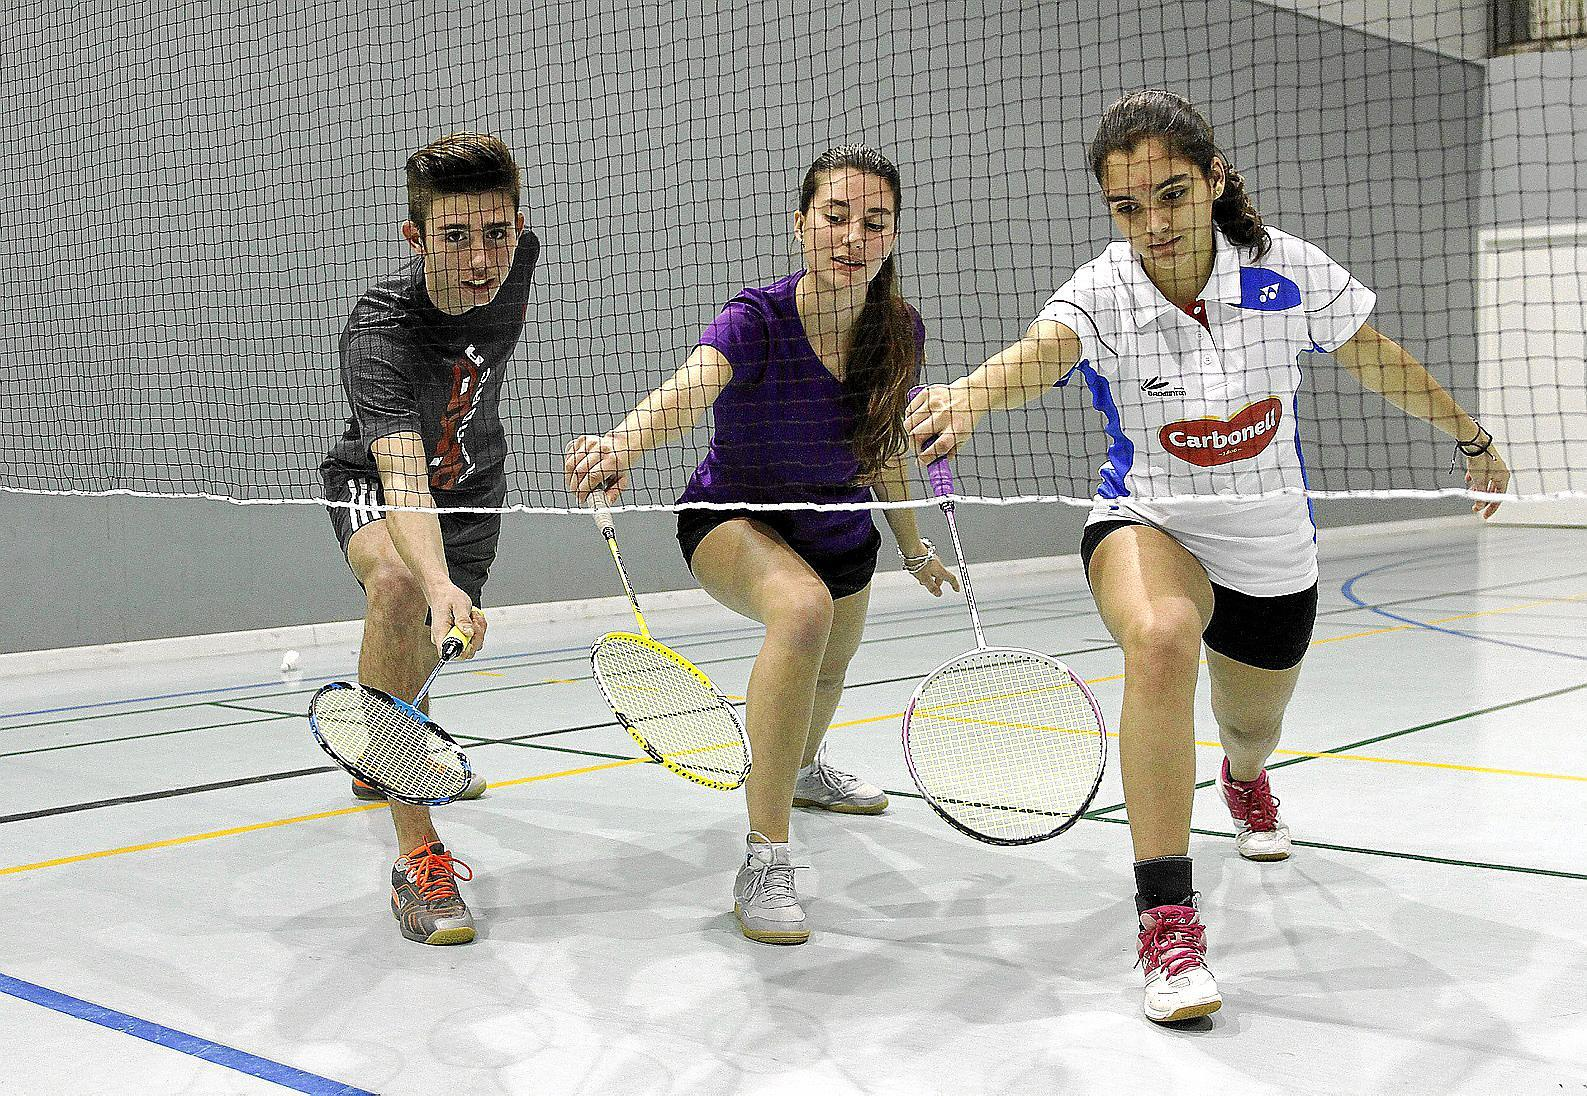 Albert Florit, Esther Seguí y Júlia Florit